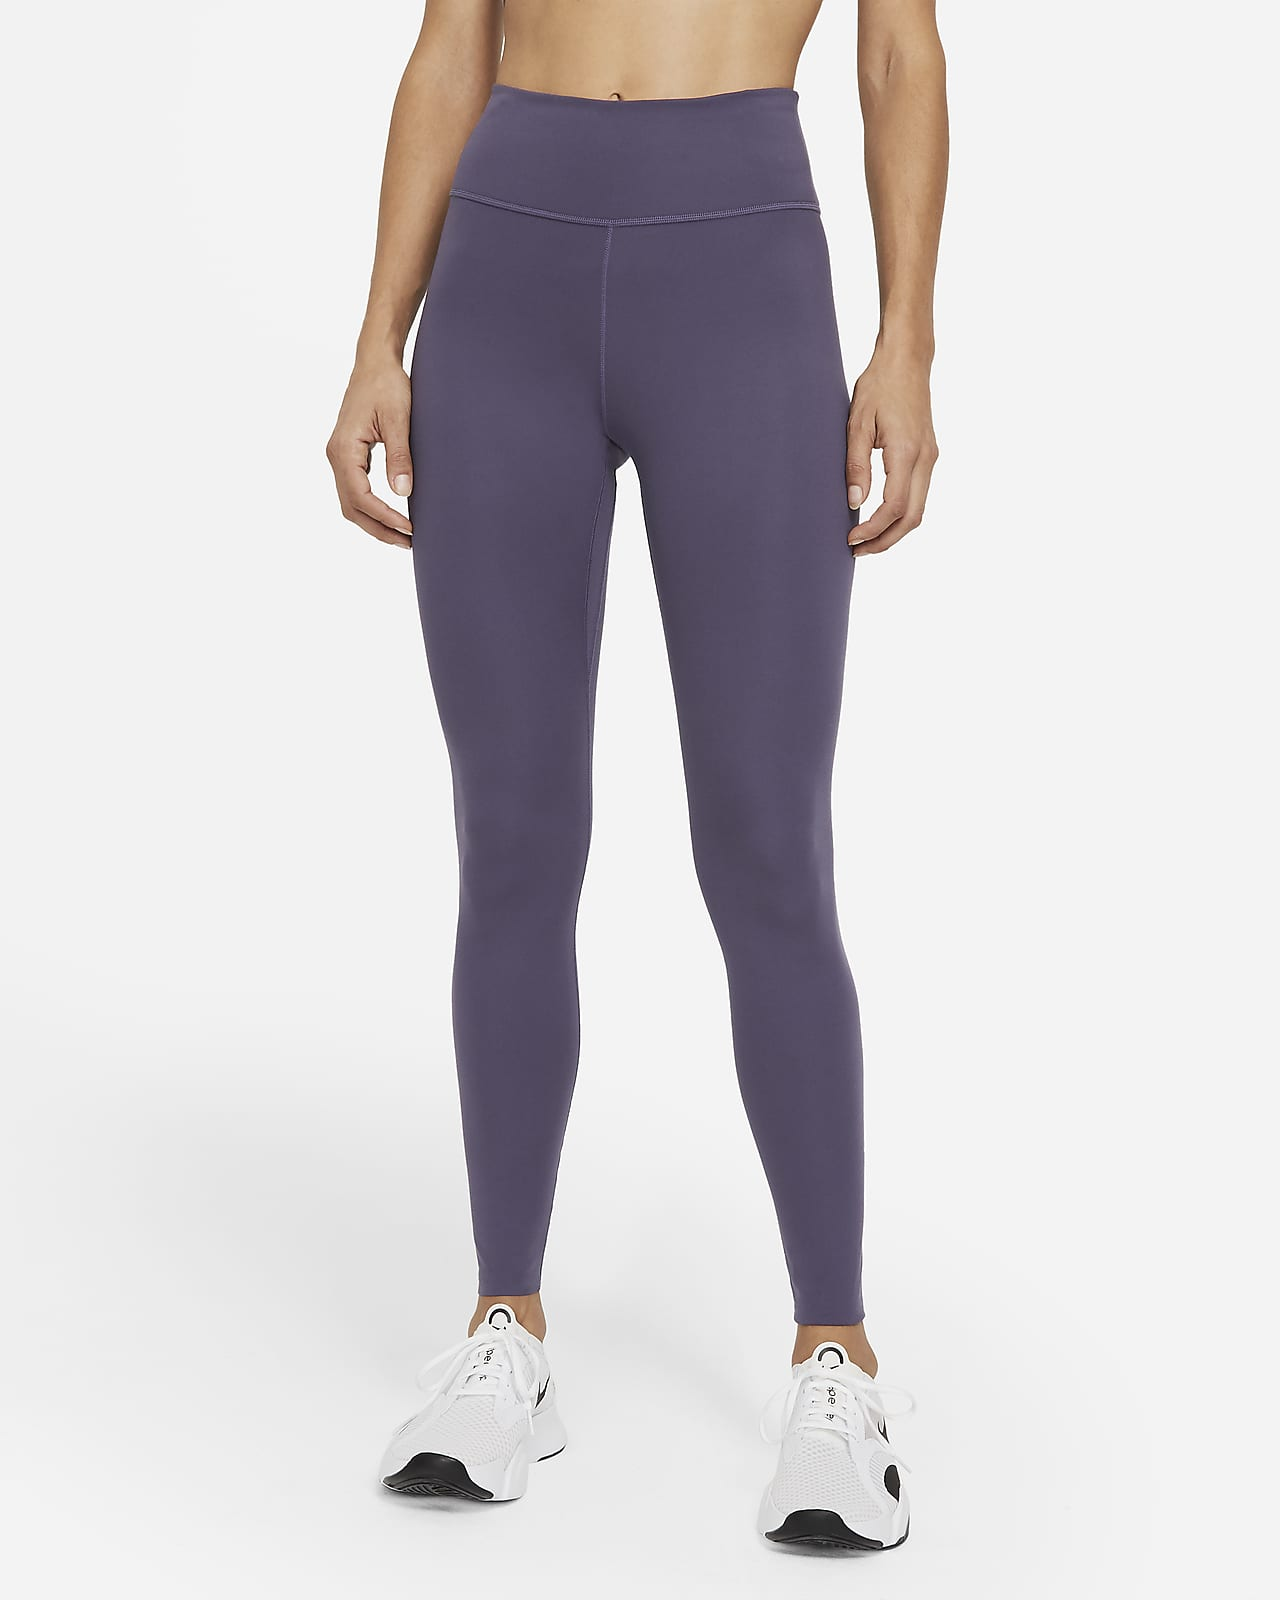 Nike One Luxe Women's Mid-Rise Leggings